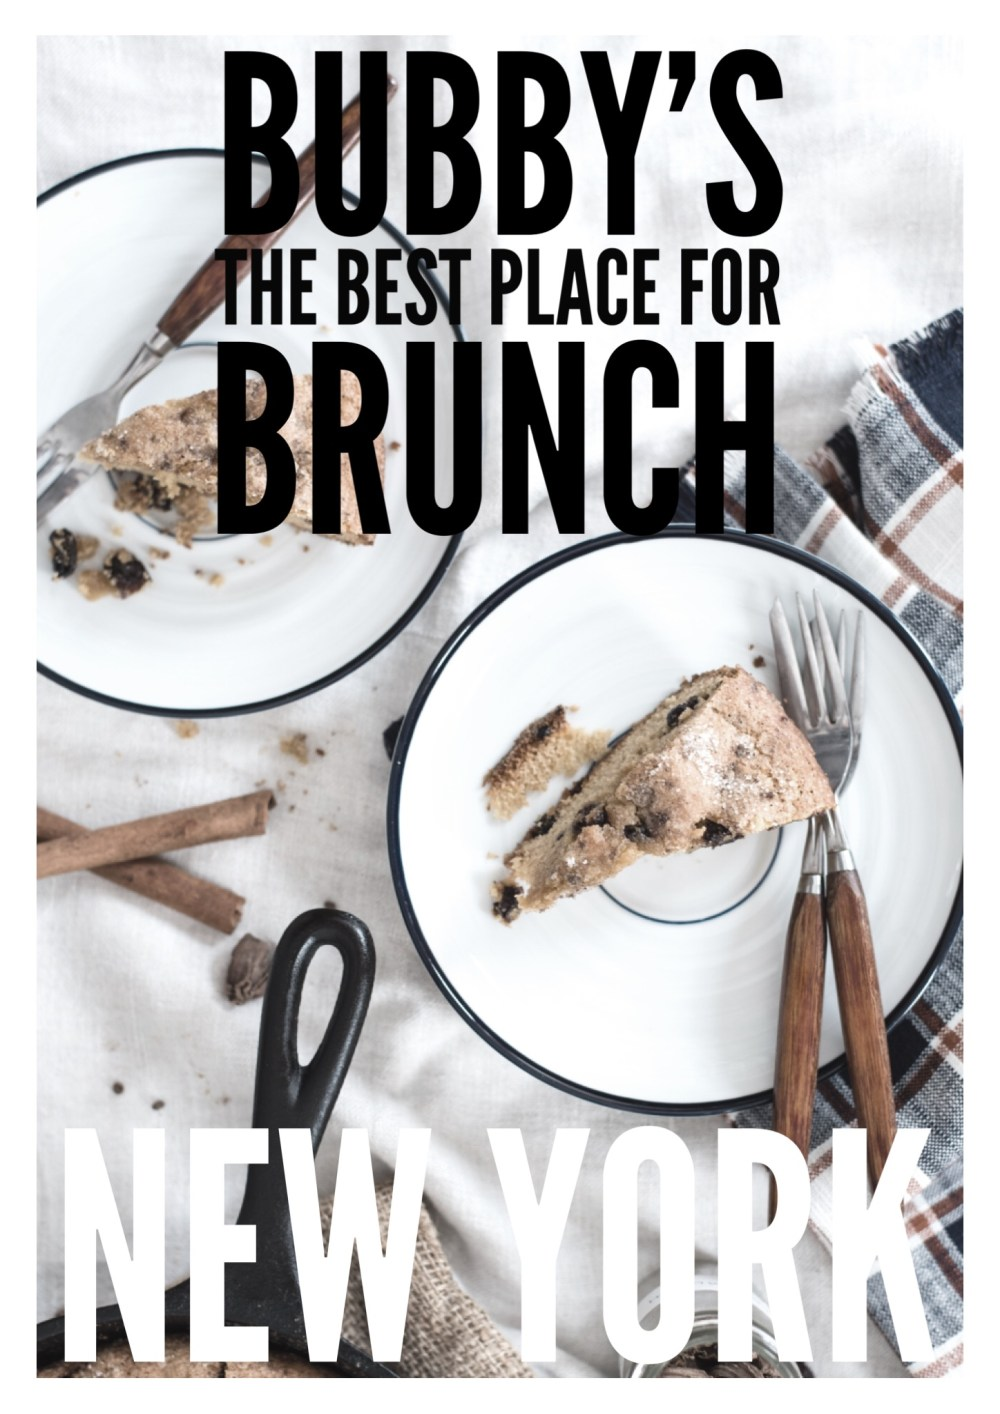 My Top Recommendation For Brunch In New York